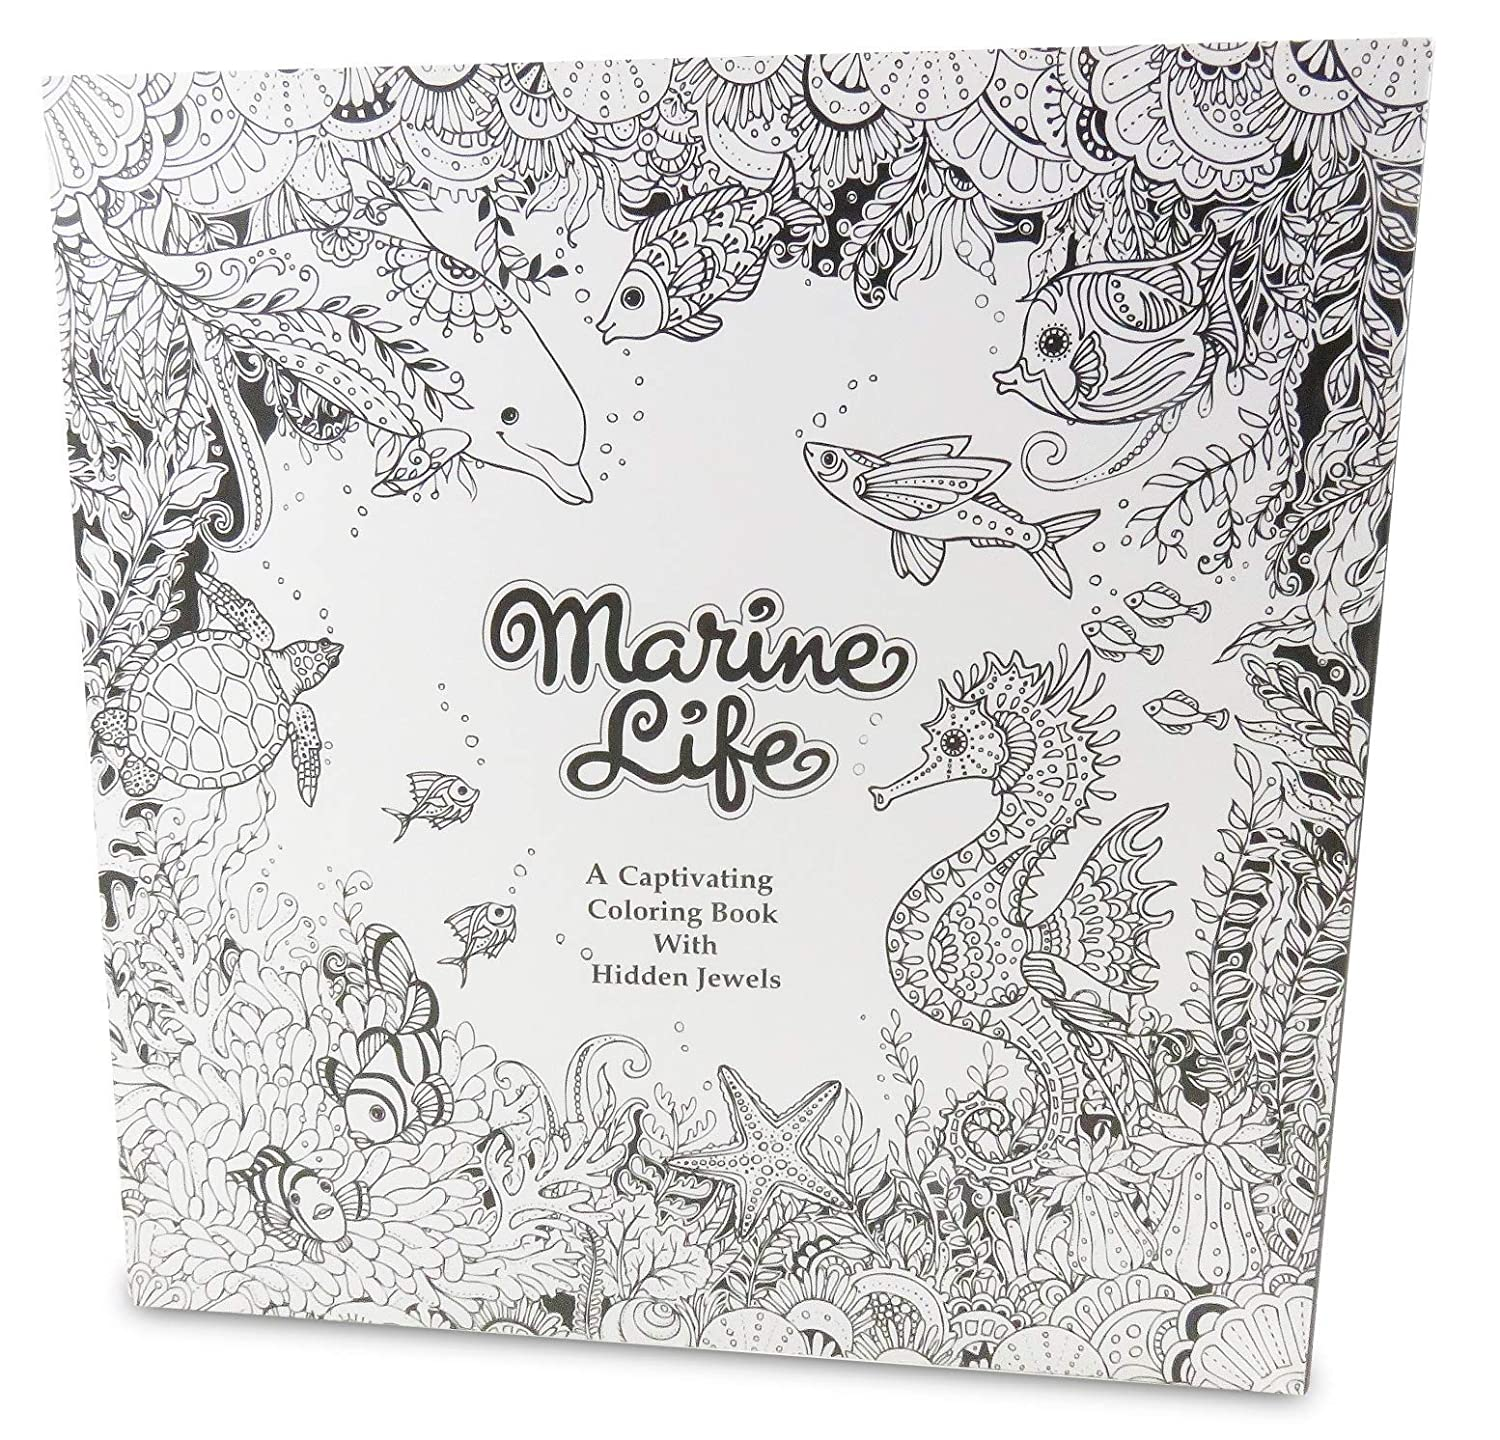 with Marine Life Coloring Book 50 Pages Rainbow Colored Pencil Set Art Tools Perfect 13 Piece Stocking Stuffer Daiso Industries Co 12 Ltd.